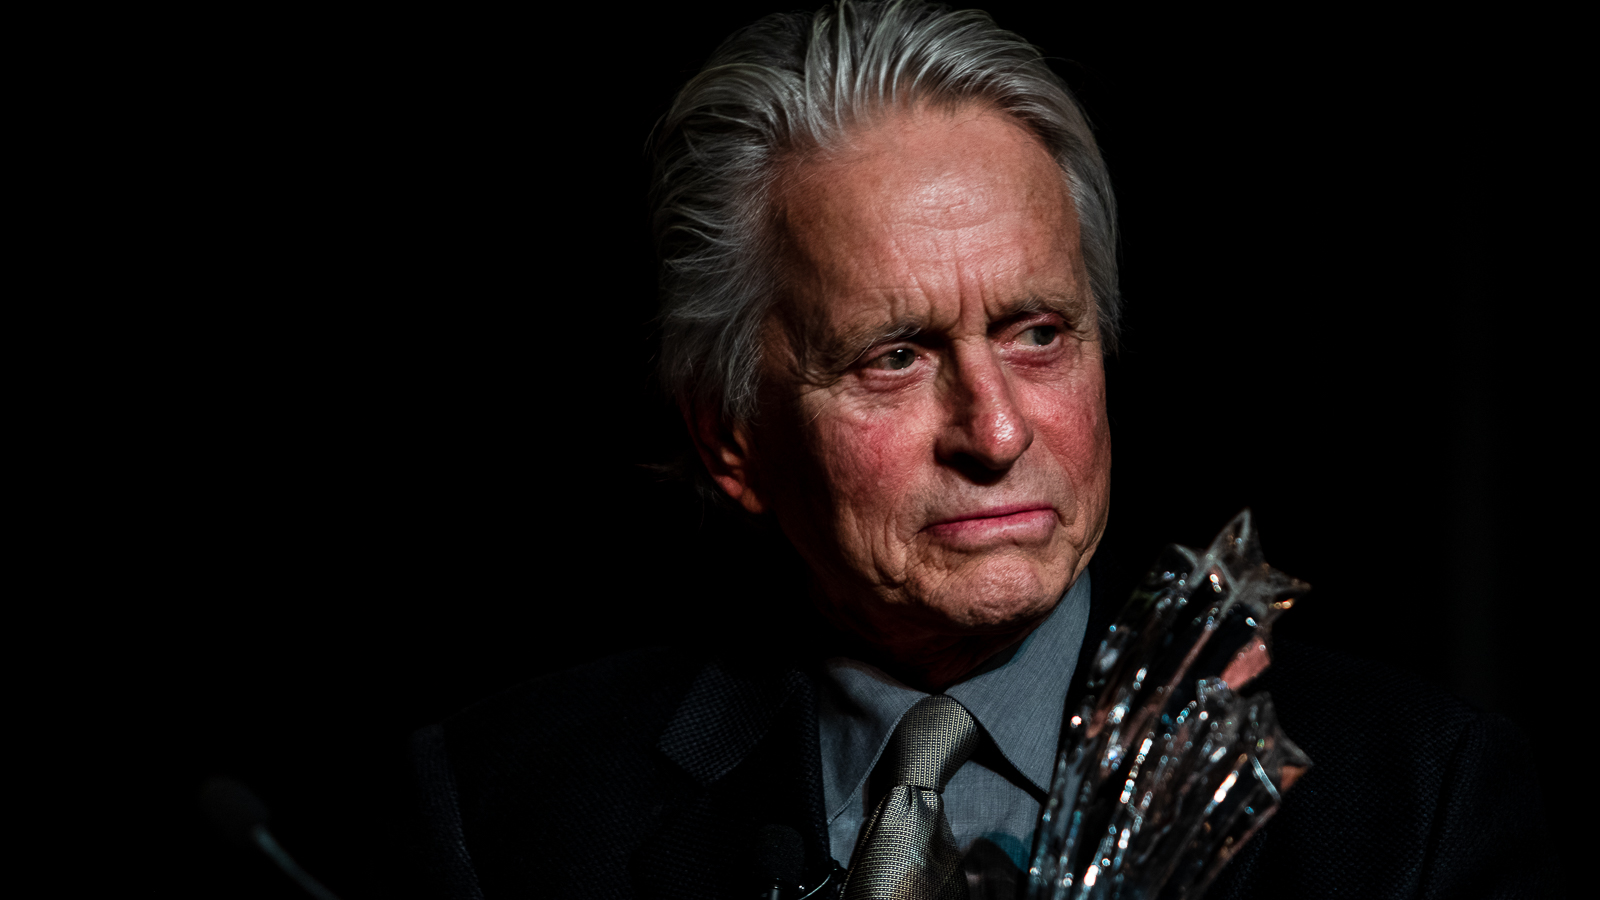 Michael Douglas, actor and director, received the Bette Davis Lifetime Achievement Award and shared his experience in films with the audience at Boston University in the evening of Nov. 28, 2018. Photo by Aaron Ye / BU News Service.